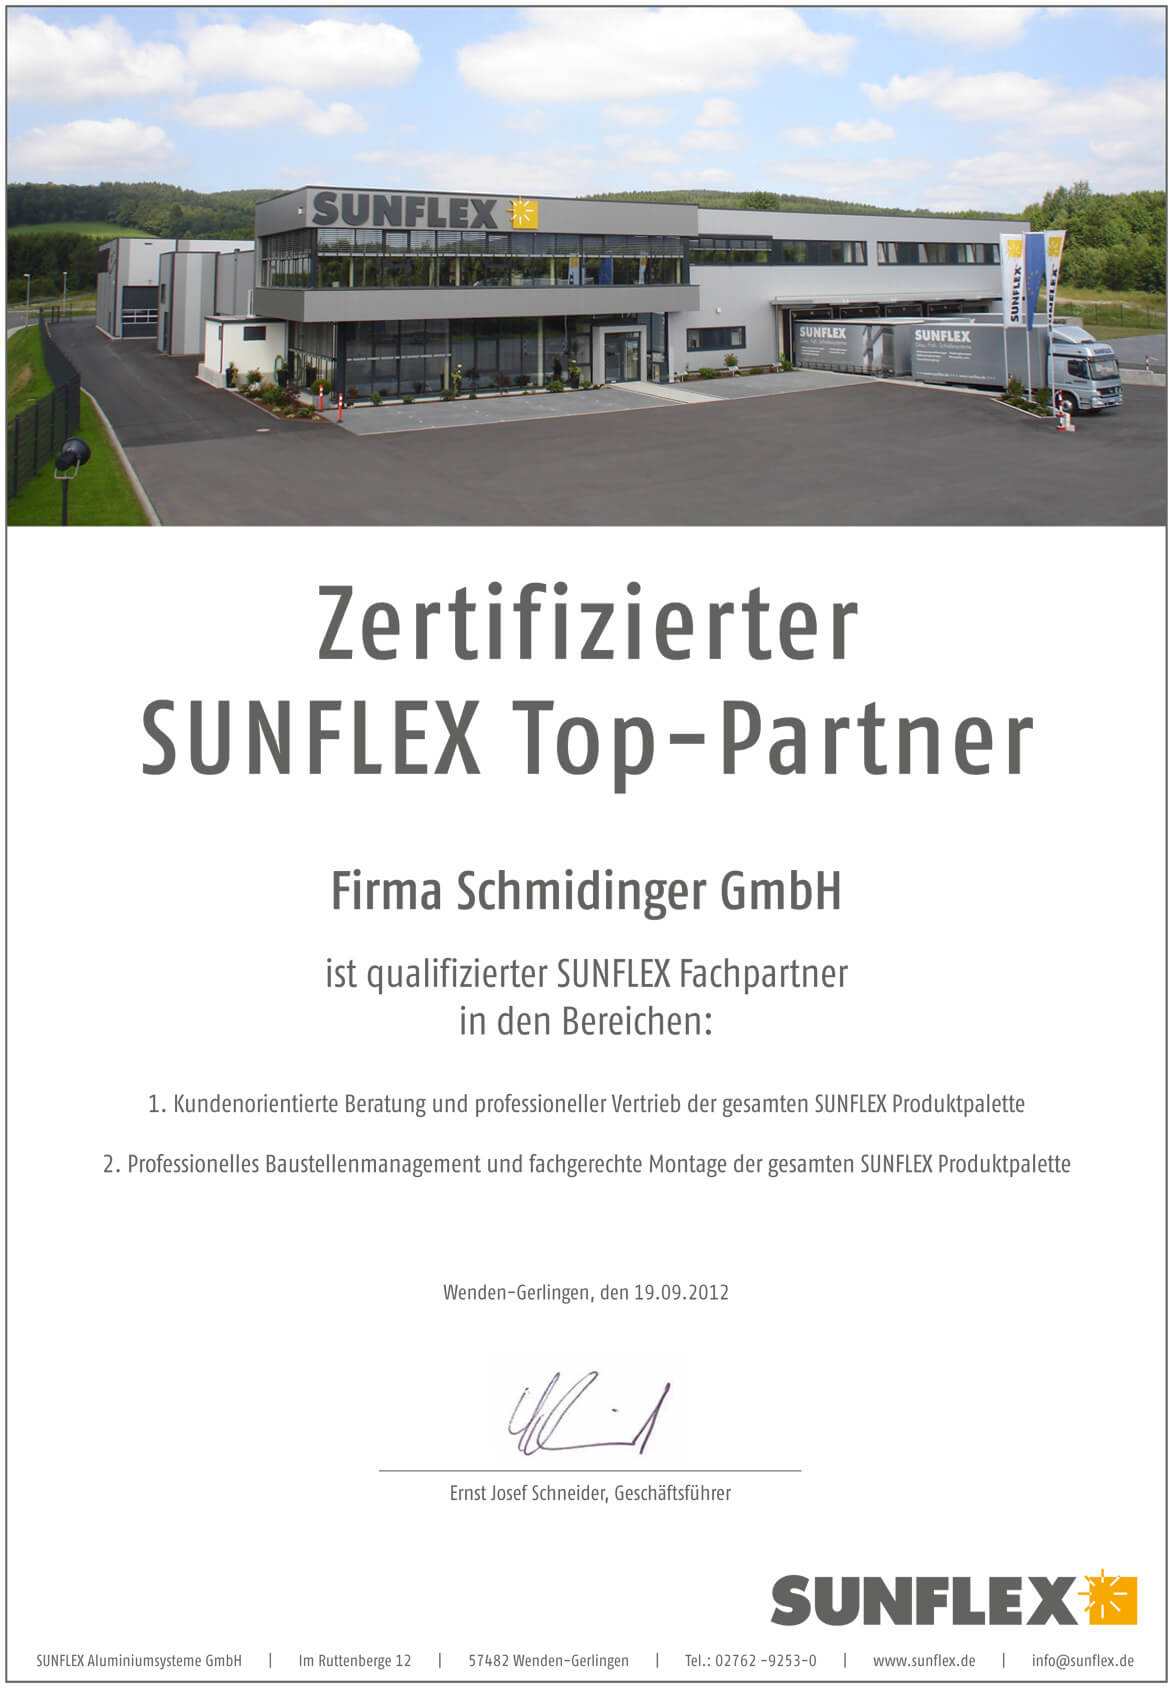 Sunflex Top-Partner Zertifikat